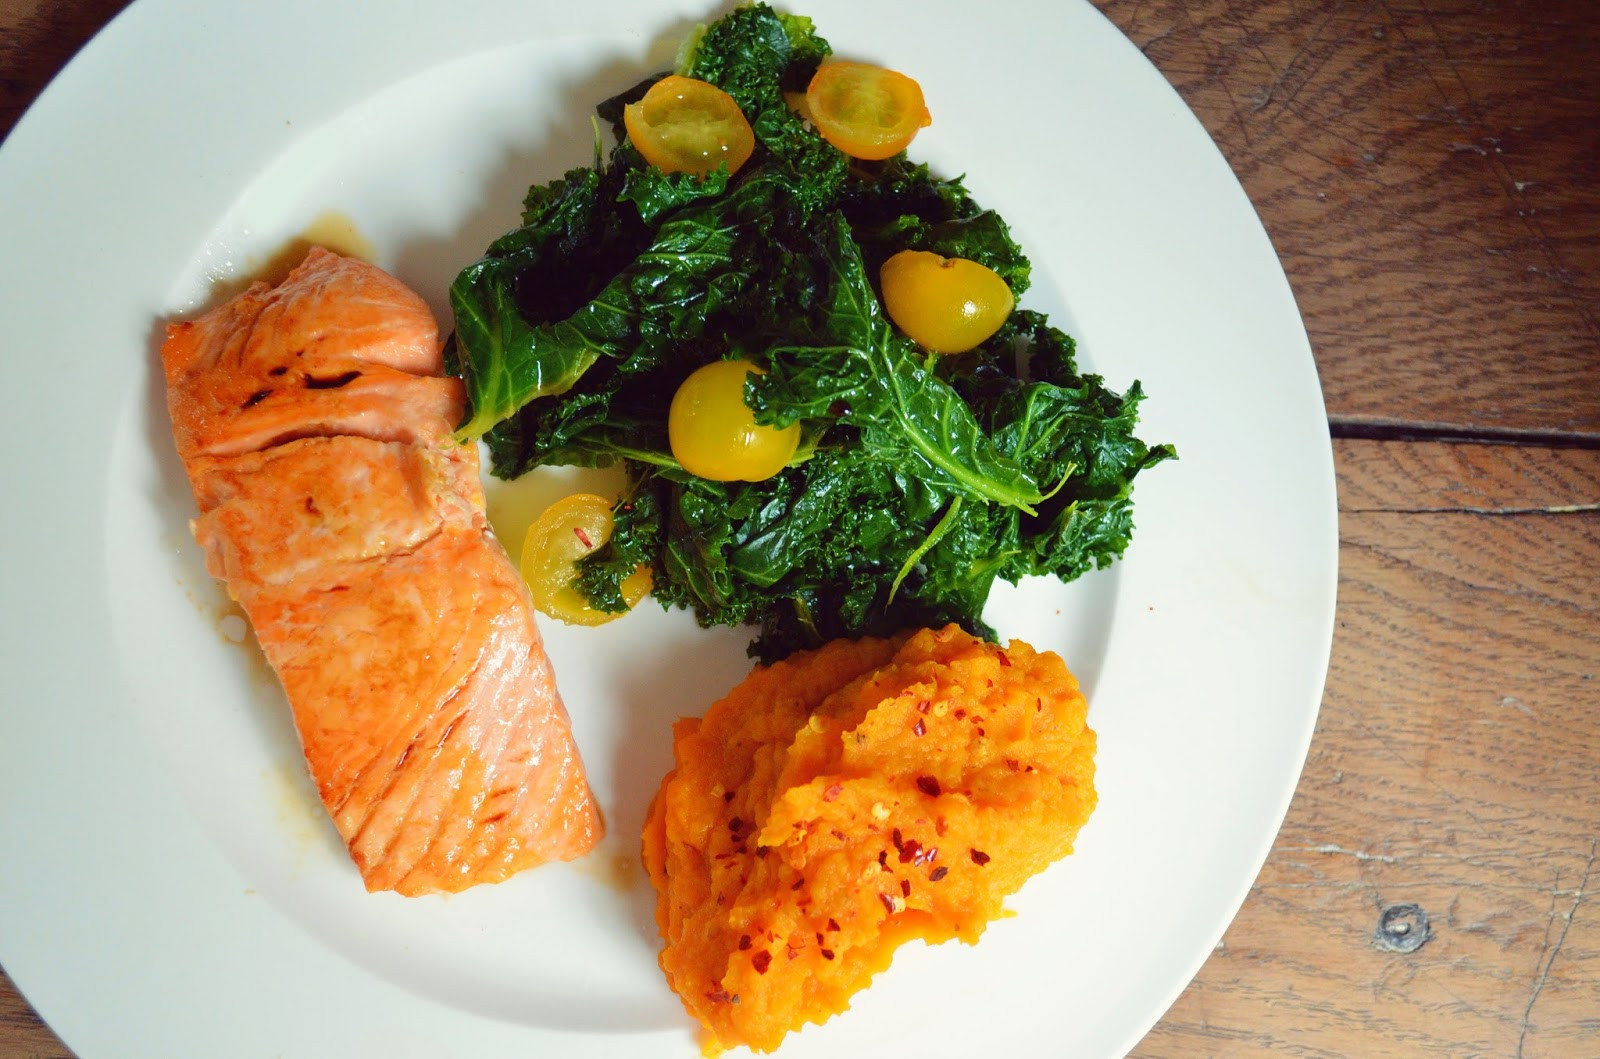 Salmon And Sweet Potato  PAN FRIED SALMON KALE SALAD & SWEET POTATO MASH